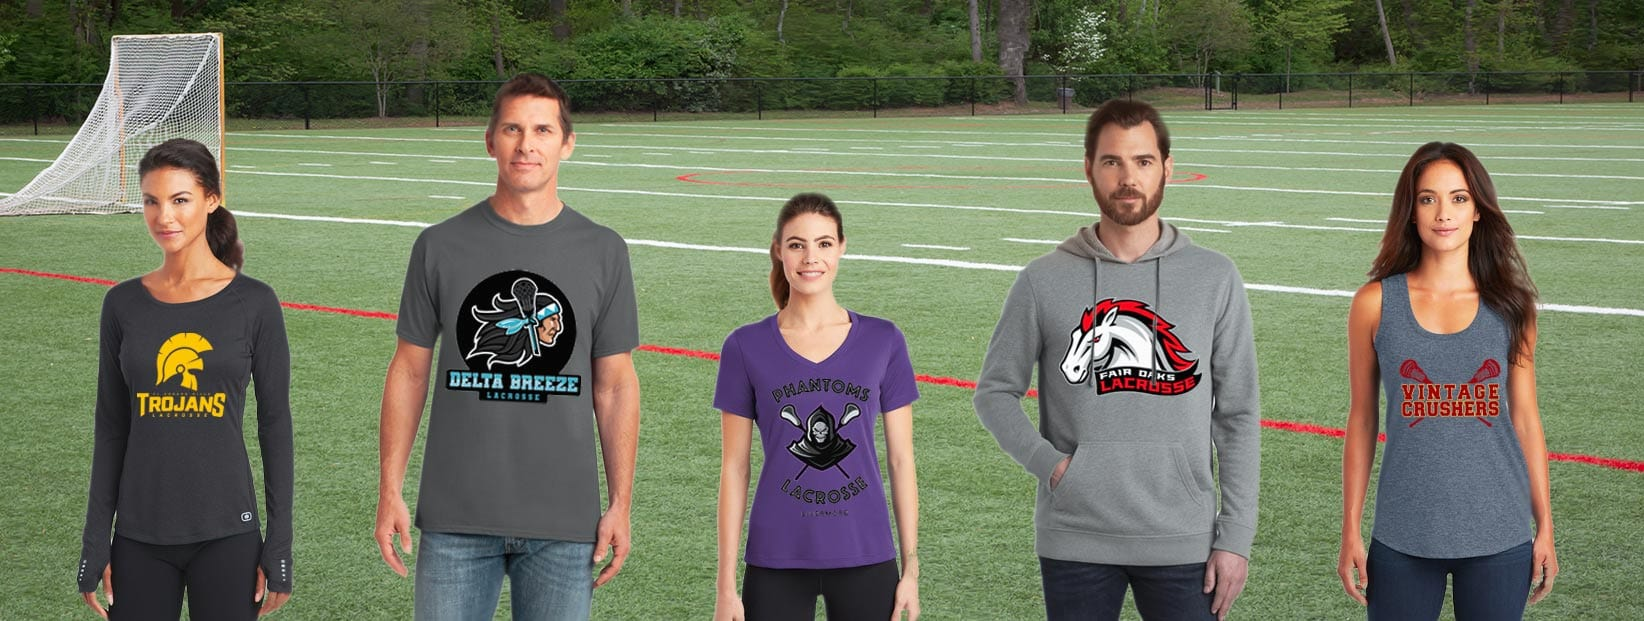 Spirit wear and team stores from Lacrosse Fanatic